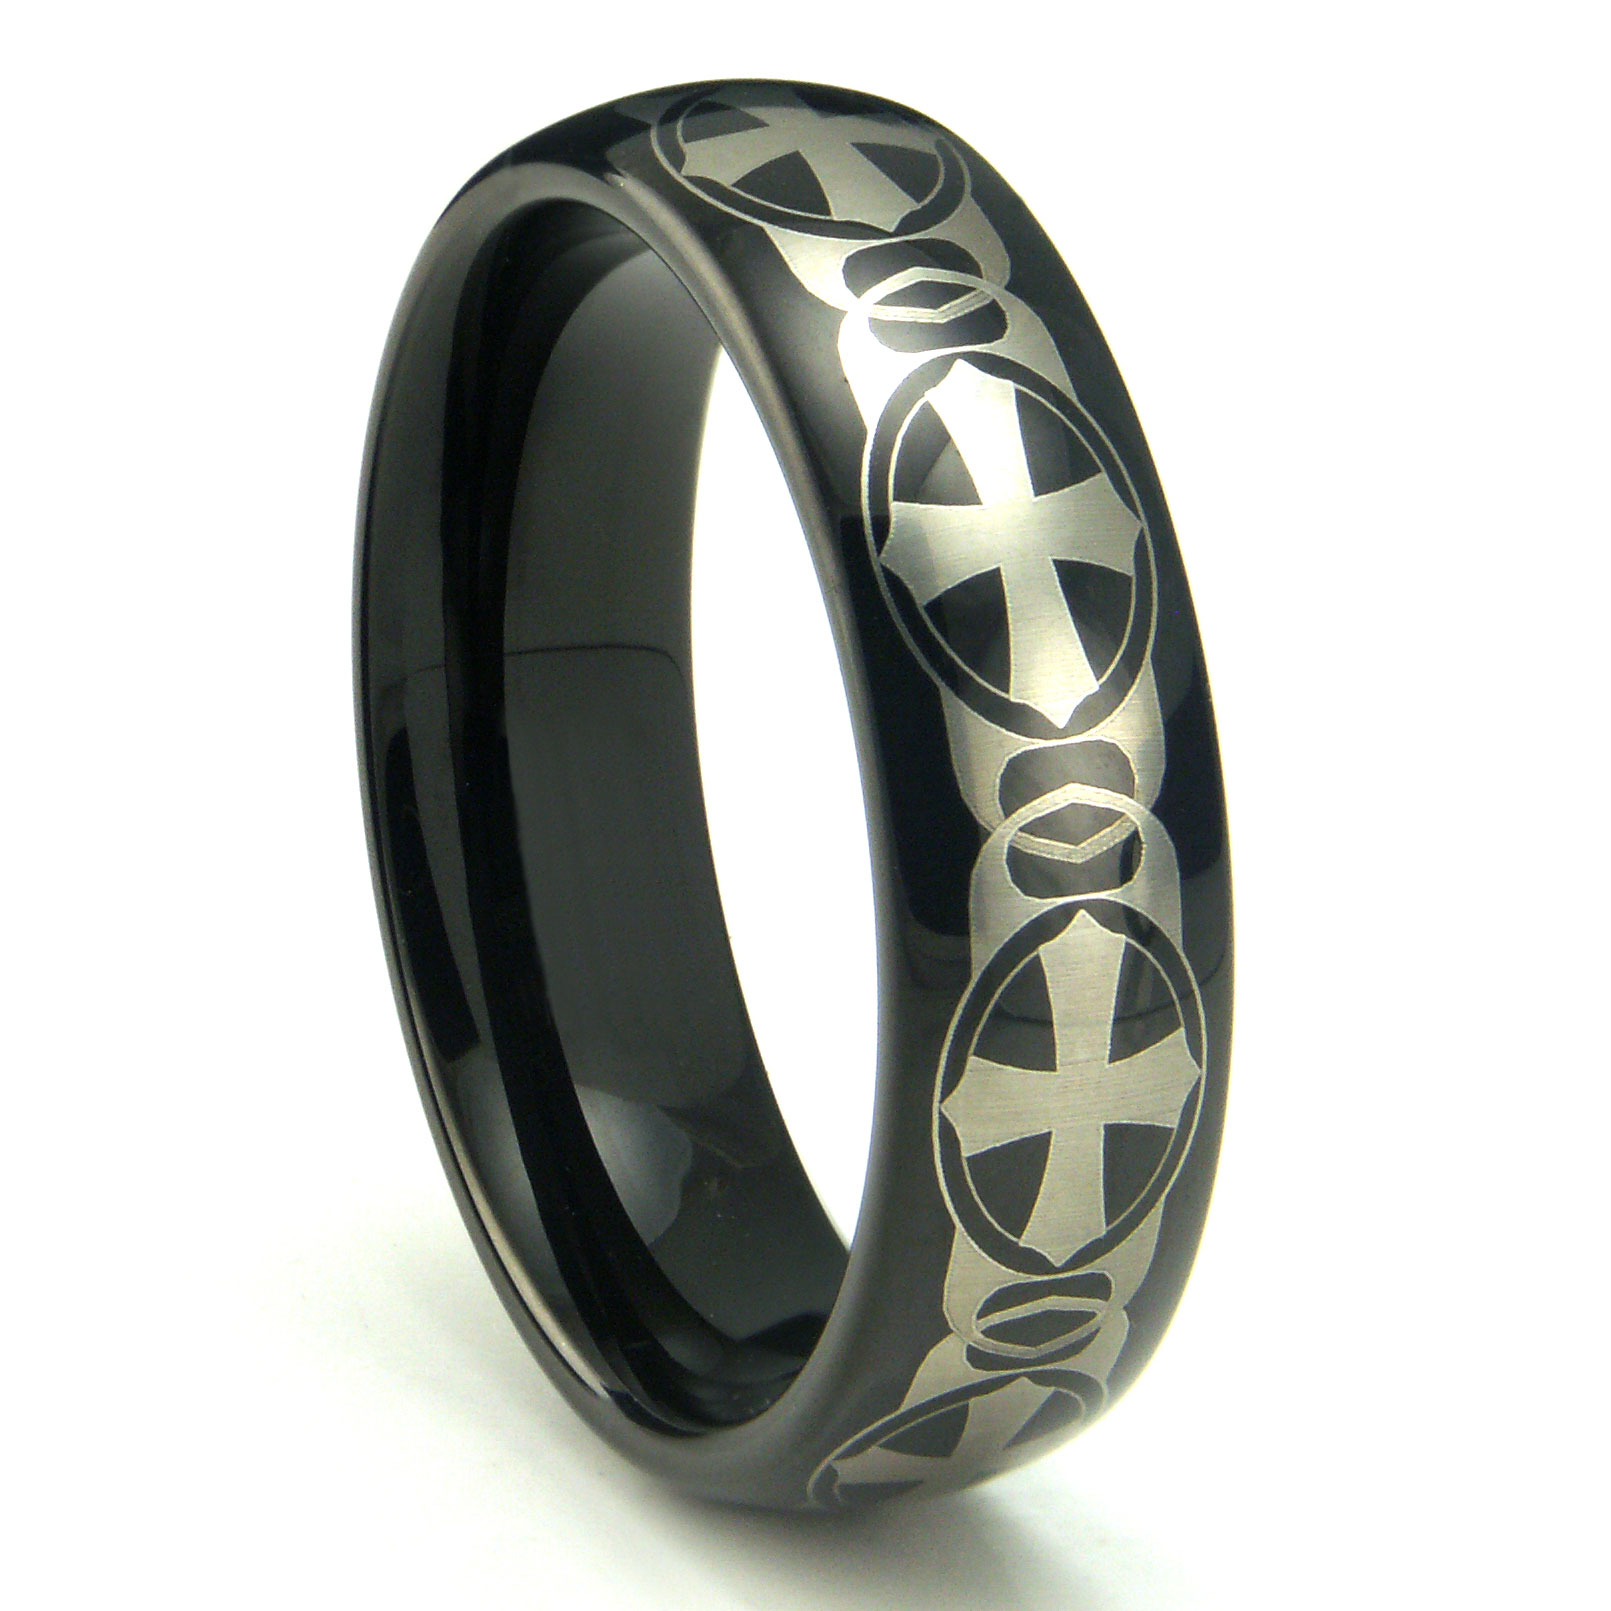 fine jewellery rings by de gaelic rhode creme la bride ethical engagement ingle